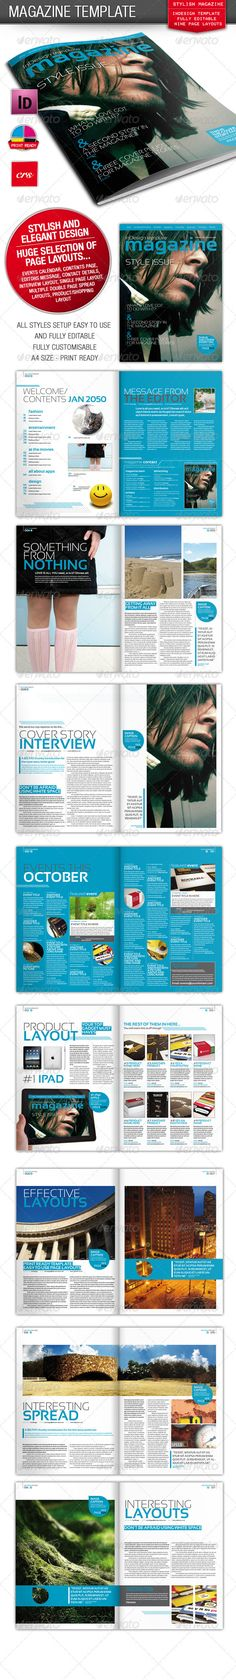 A4 / Letter Magzplus Magazine Template | Template, Indesign magazine ...